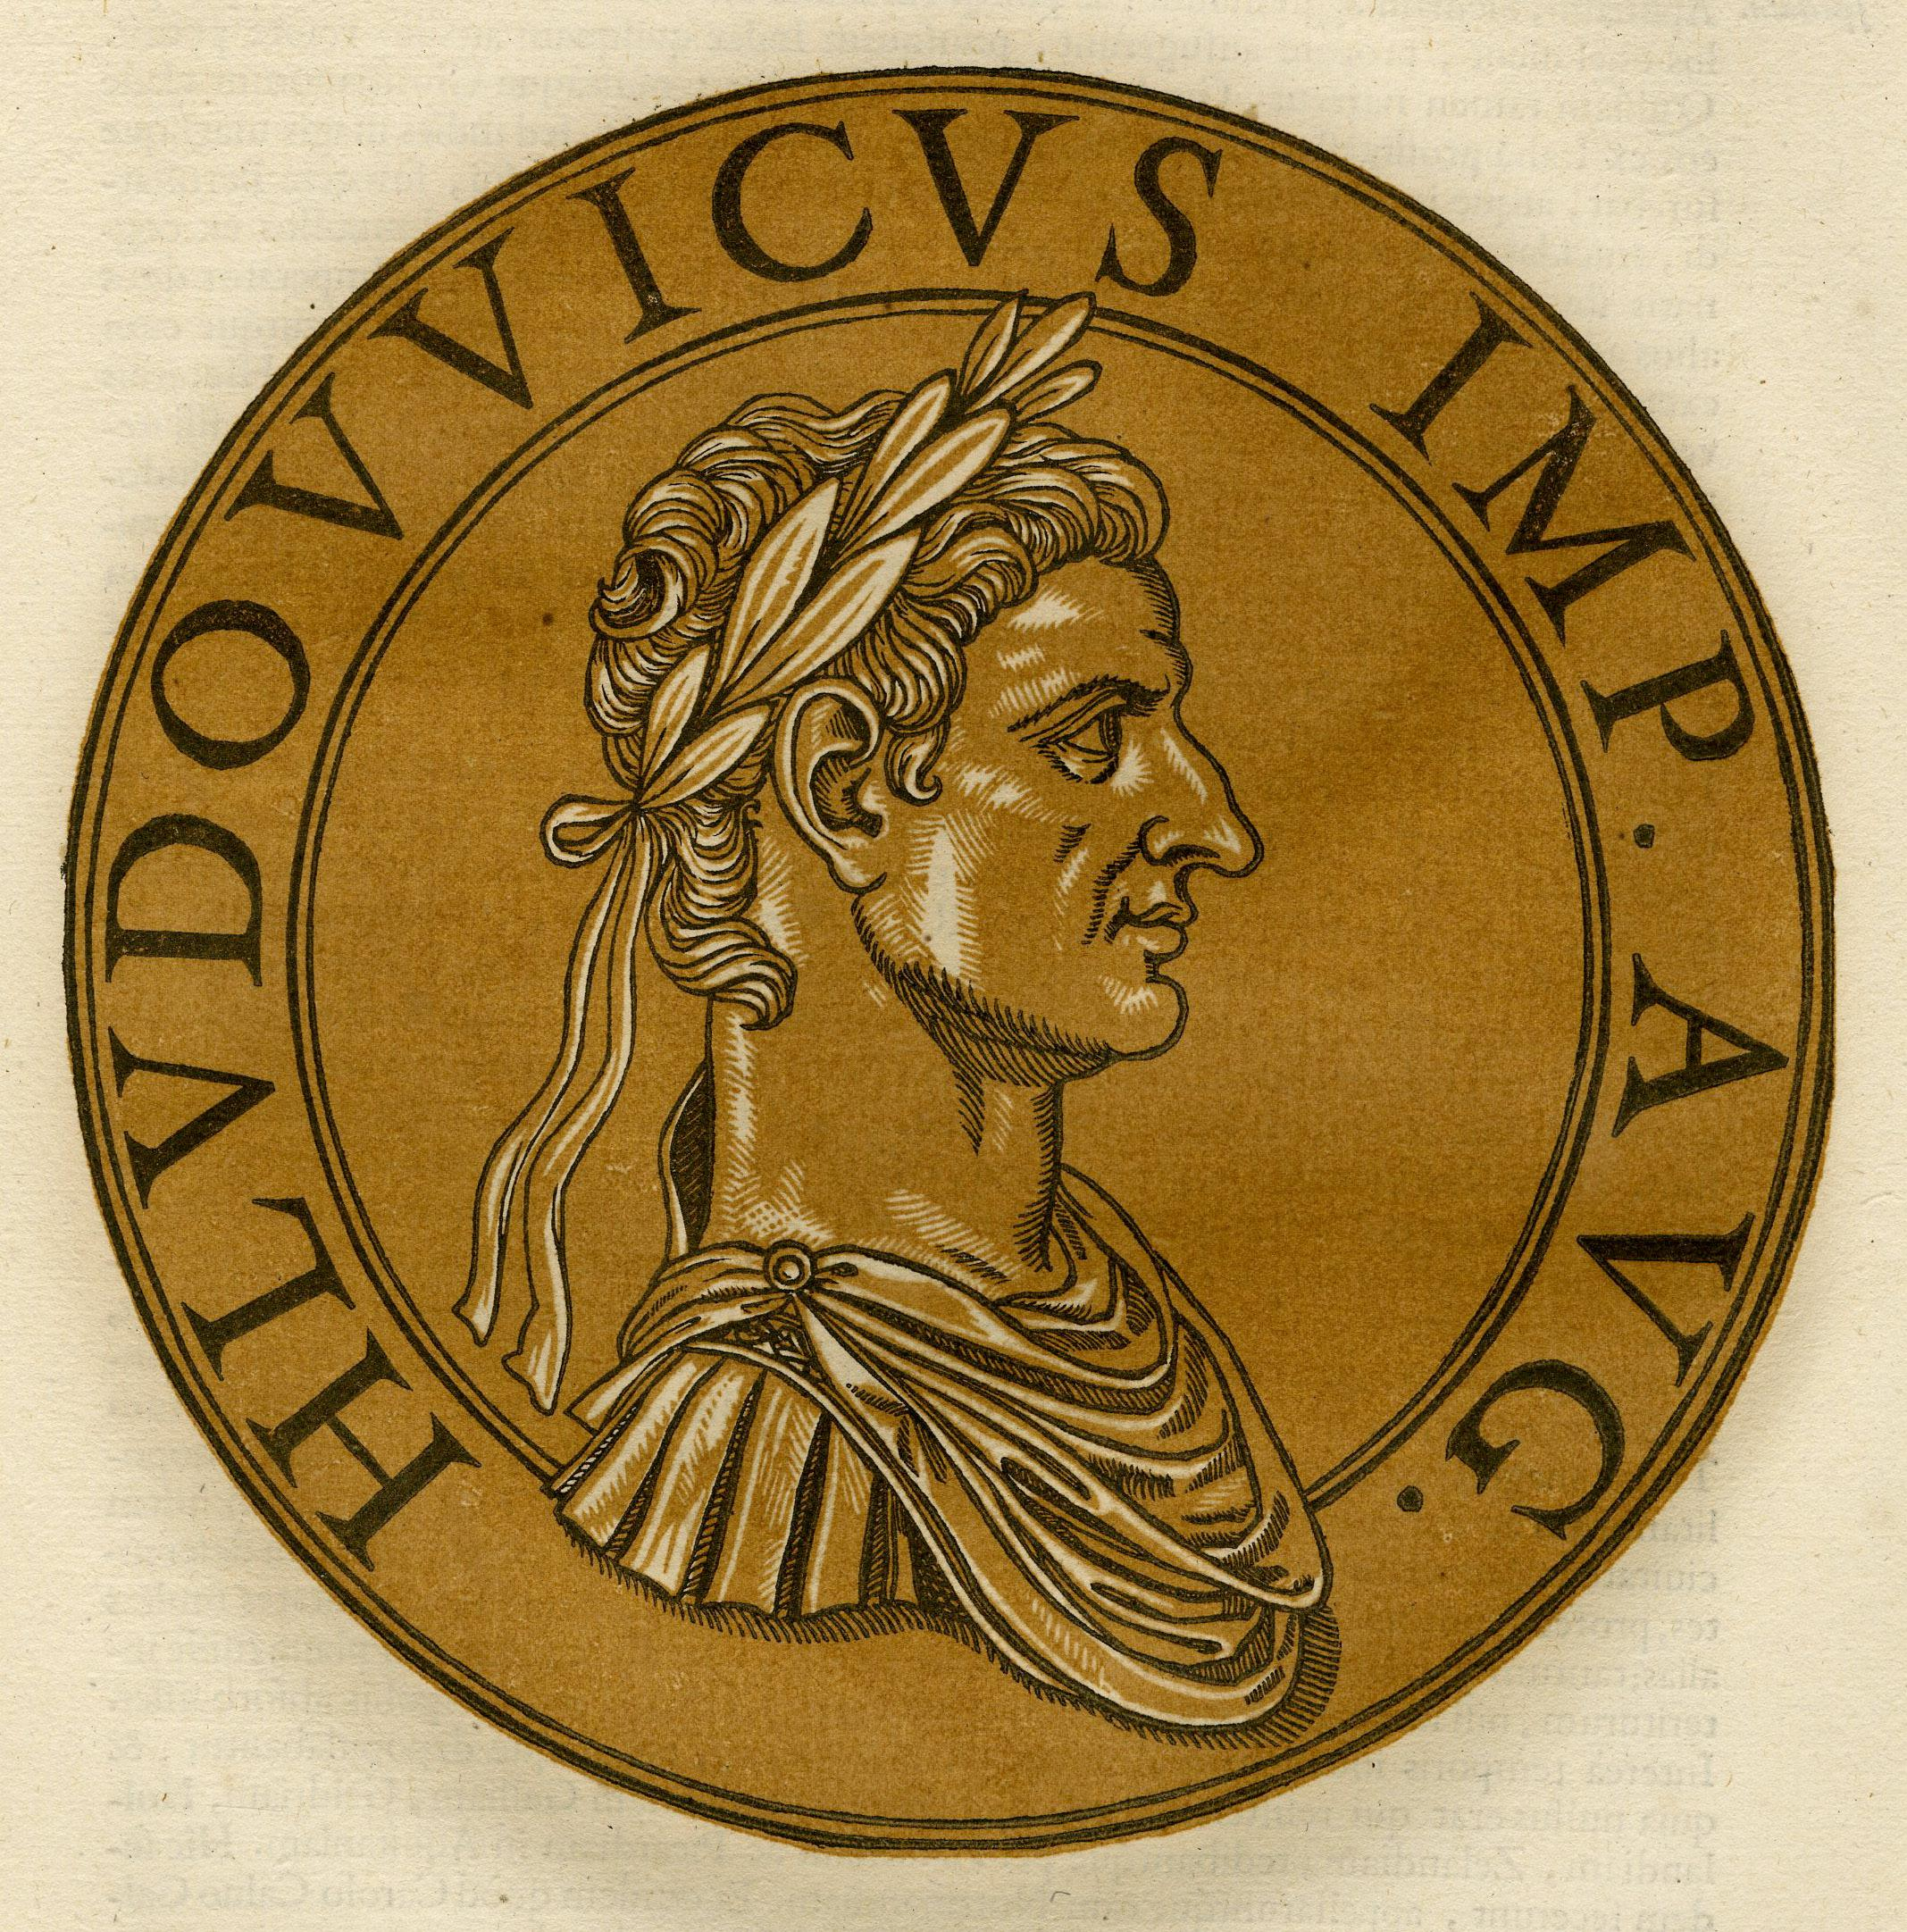 Louis I of France as a Roman Emperor, in profile to the right